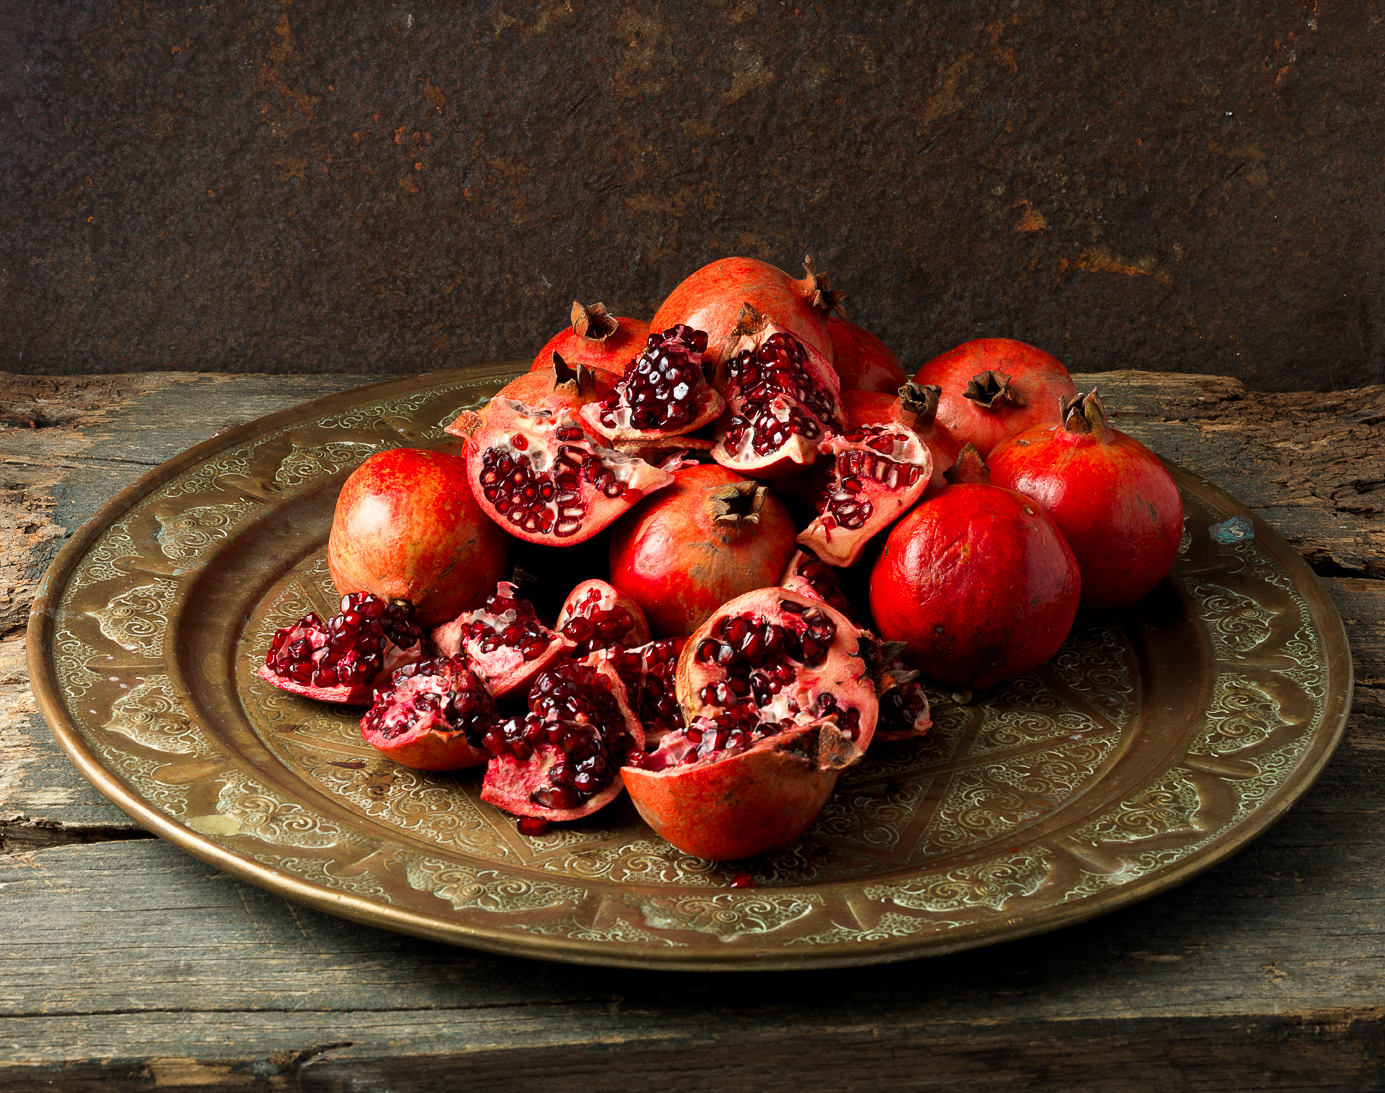 020a pomegranates copy.jpg